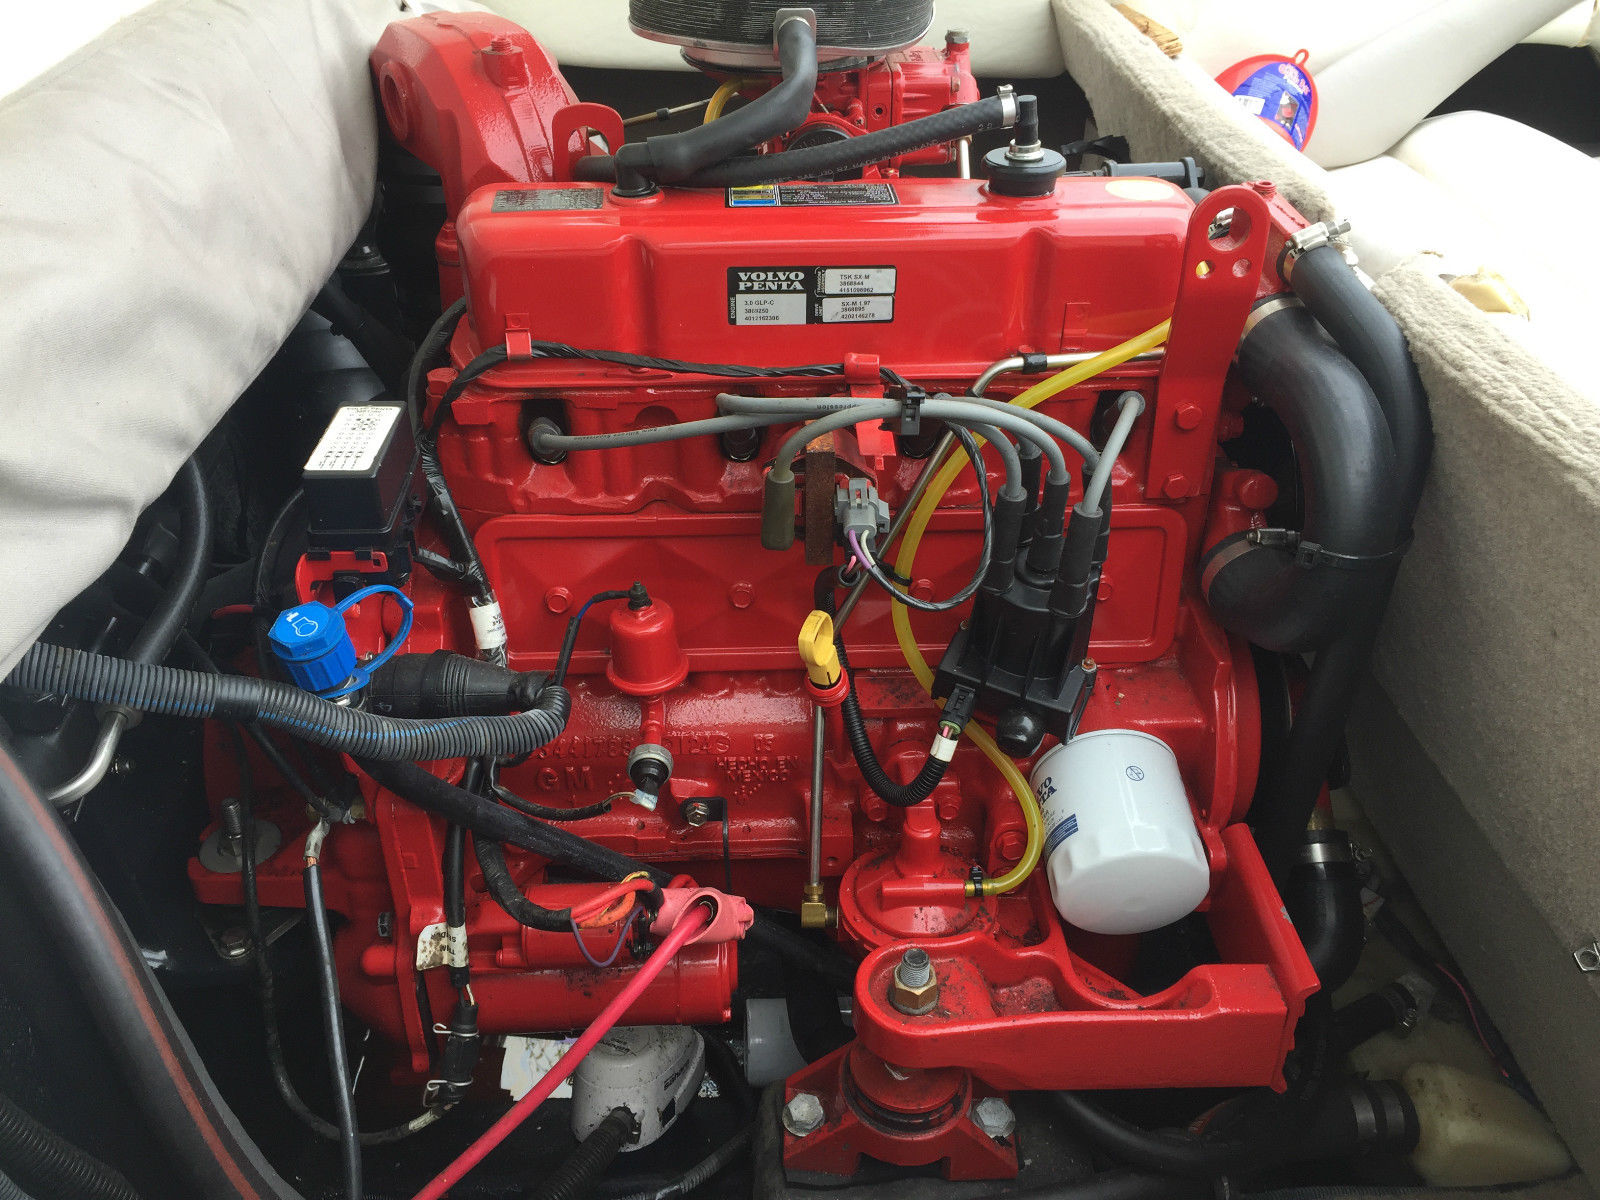 volvo penta 3 0 gl sxm 2005 for sale for 4 500 boats